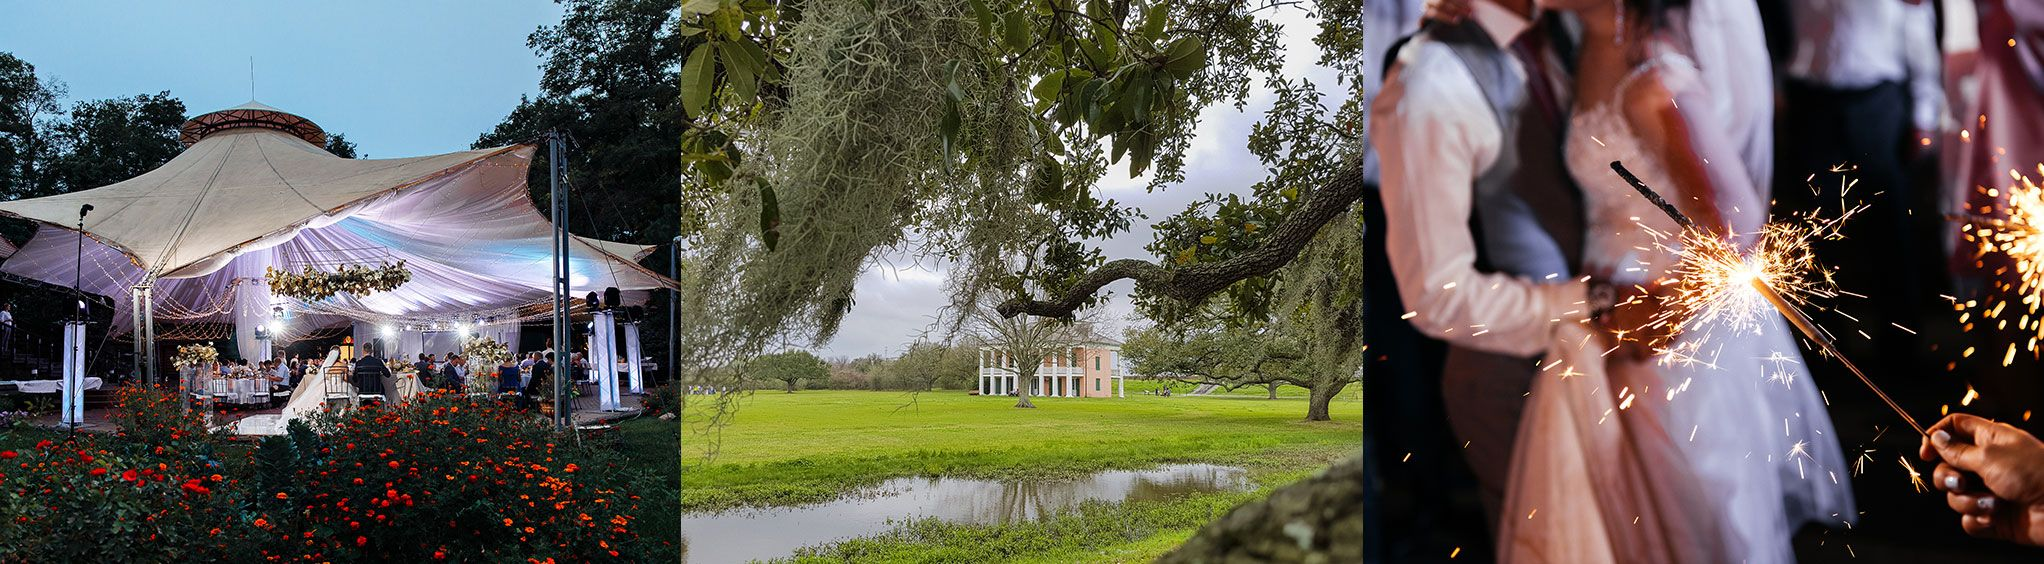 Stella Plantation near New Orleans